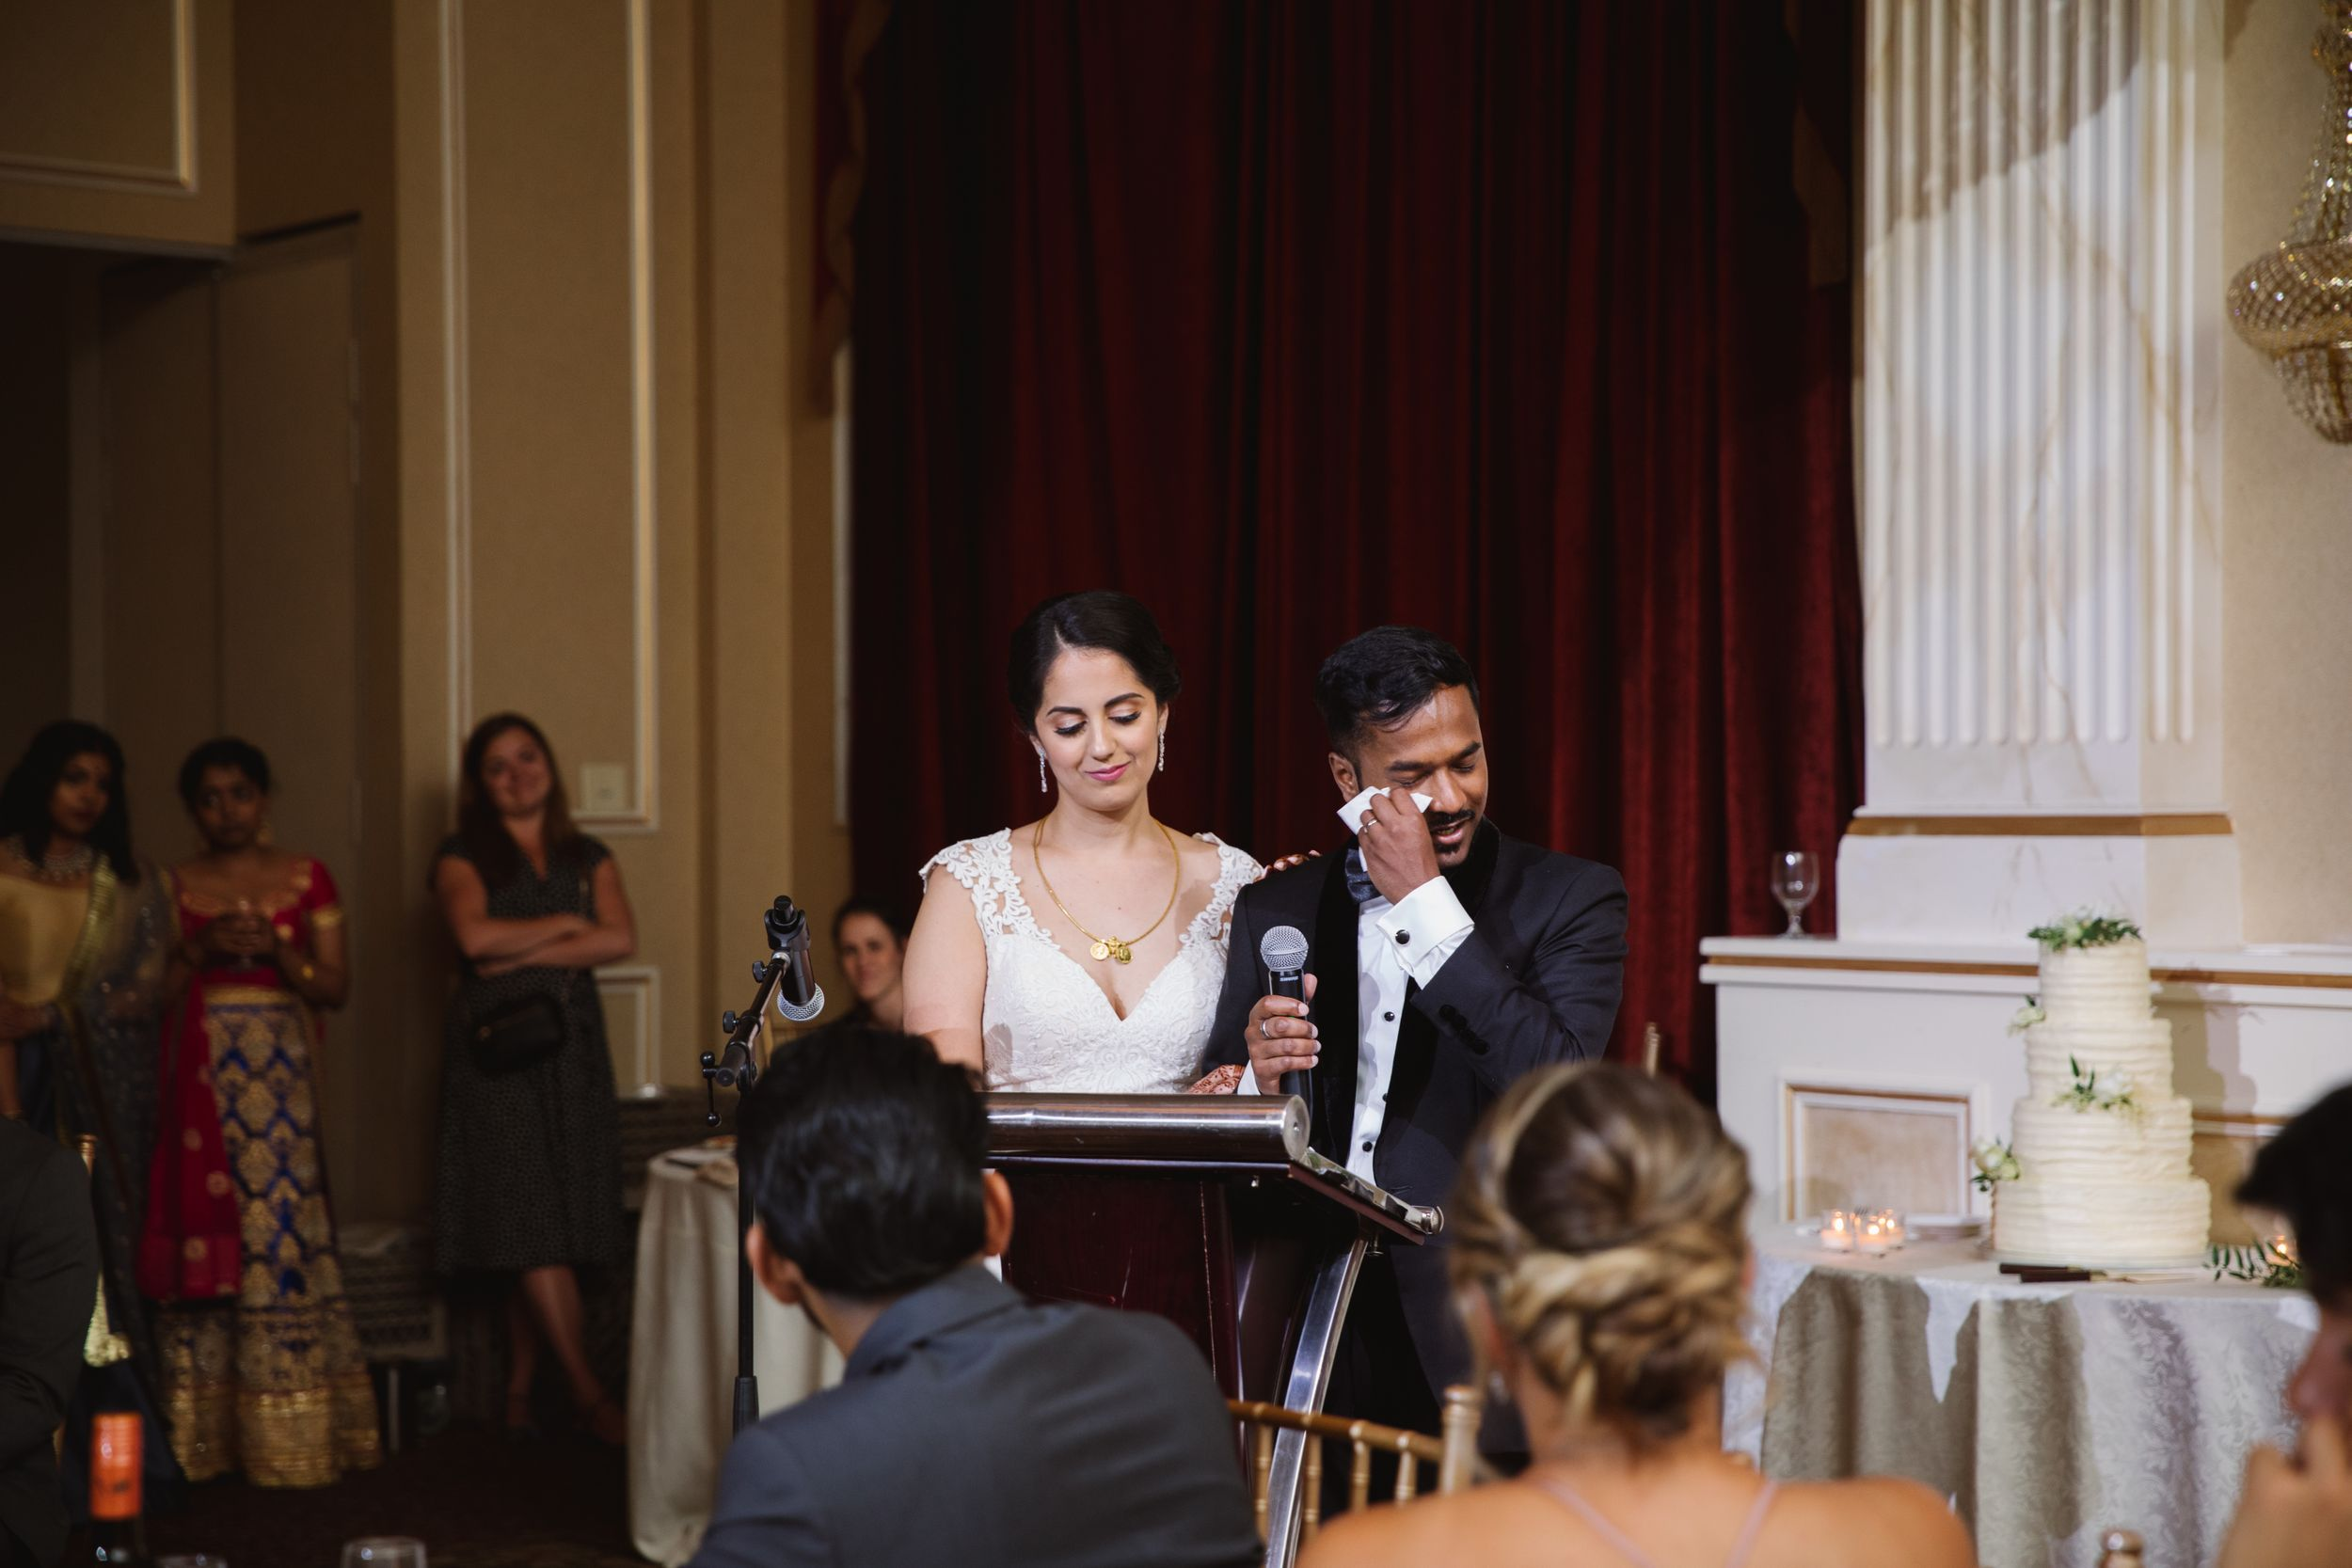 groom crying during speech at wedding reception